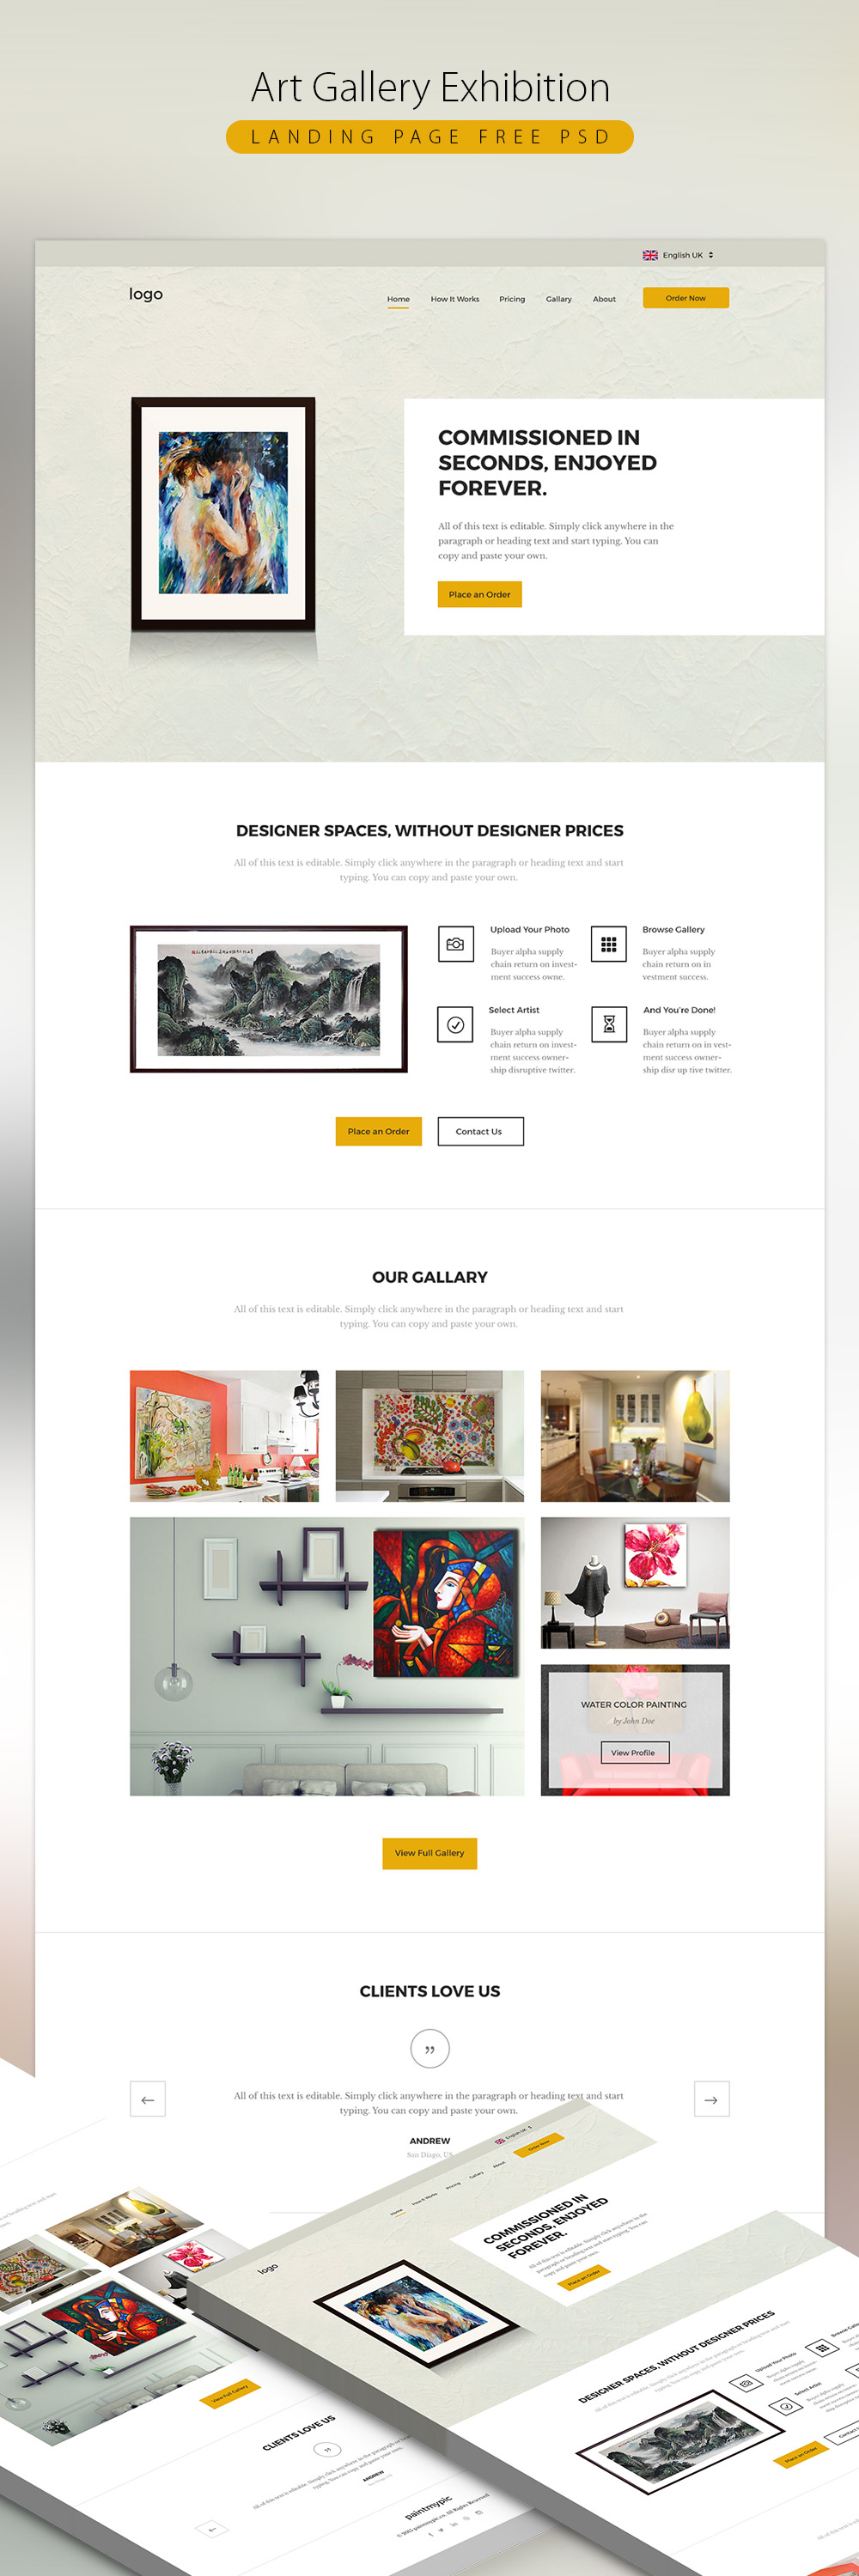 Cool Art Gallery Exhibition Landing page Free PSD. Download Art ...